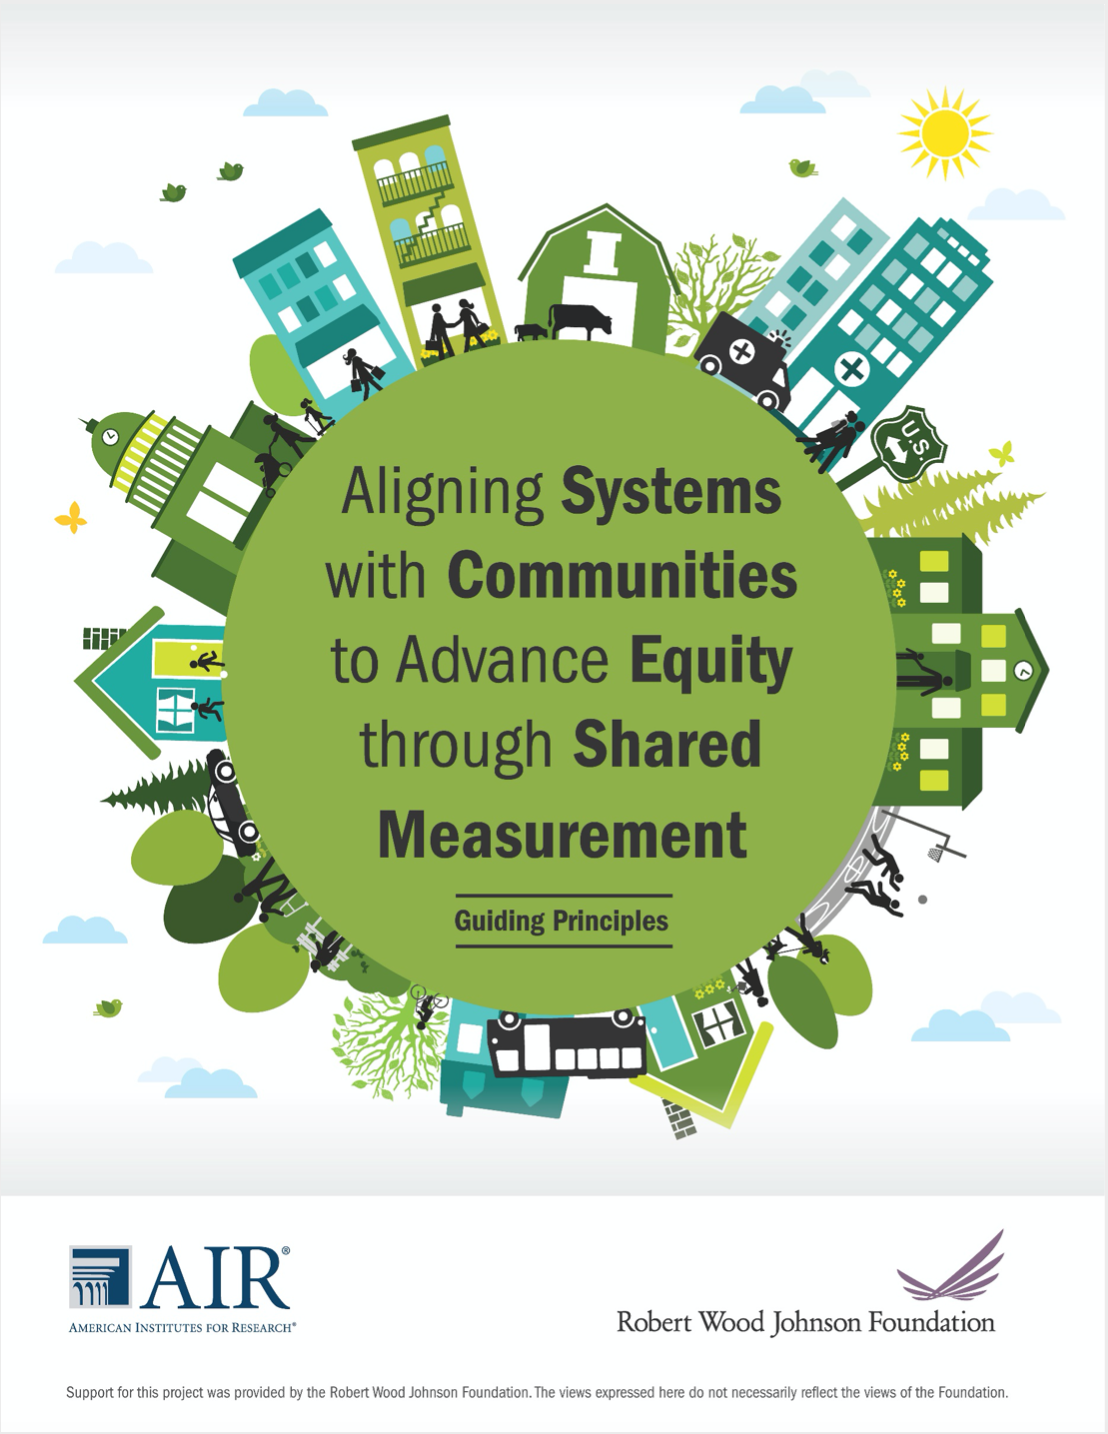 Aligning Systems with Communities to Advance Equity through Shared Measurement